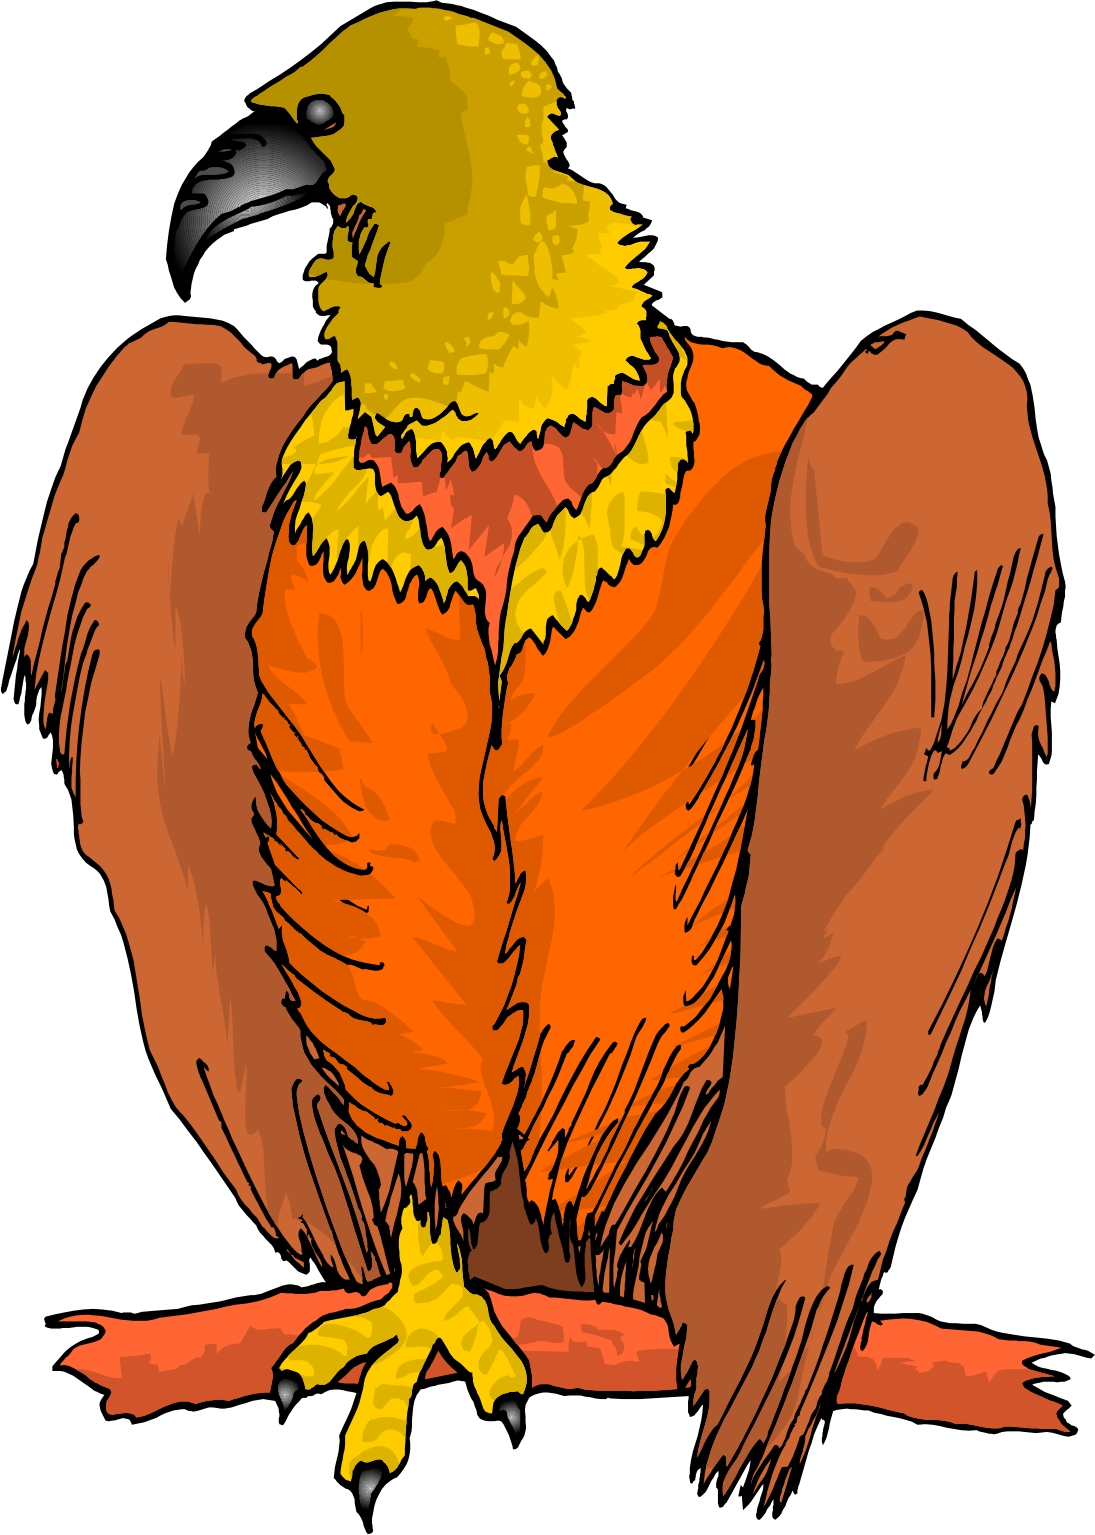 Vulture clipart #11, Download drawings